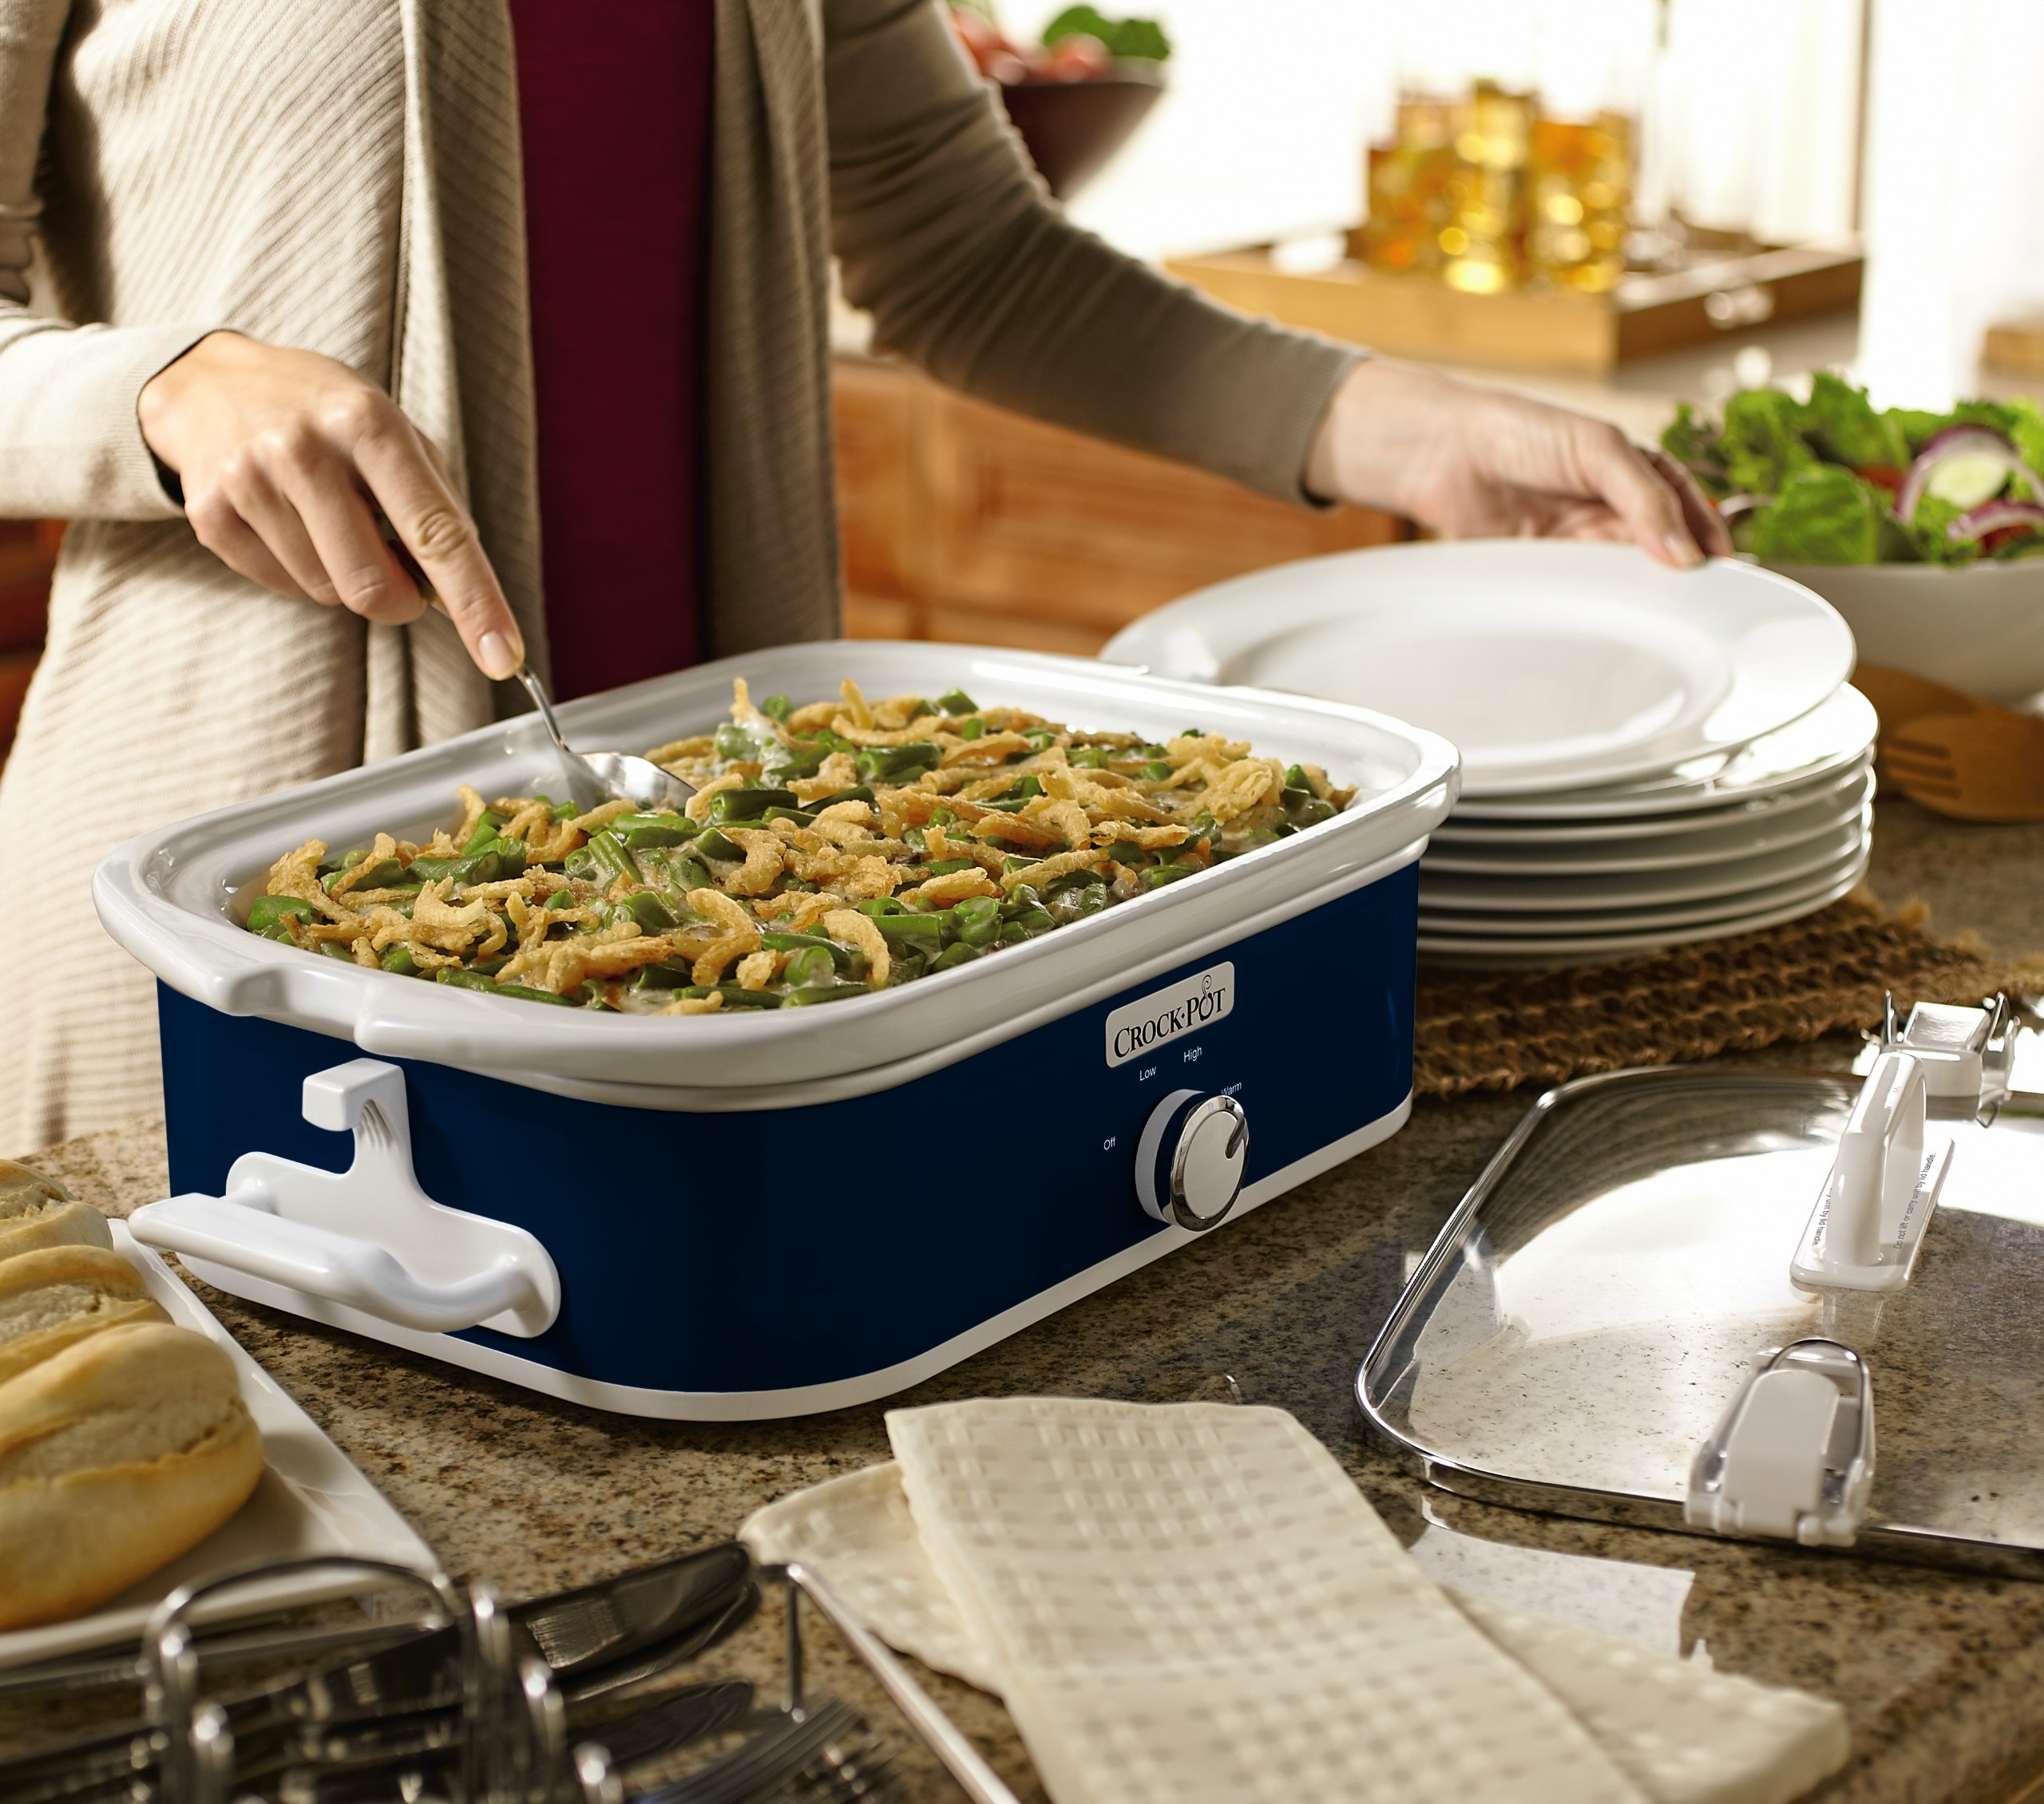 Crock-Pot SCCPCCM350-BL Manual Slow Cooker, Navy Blue by CROCK-POT